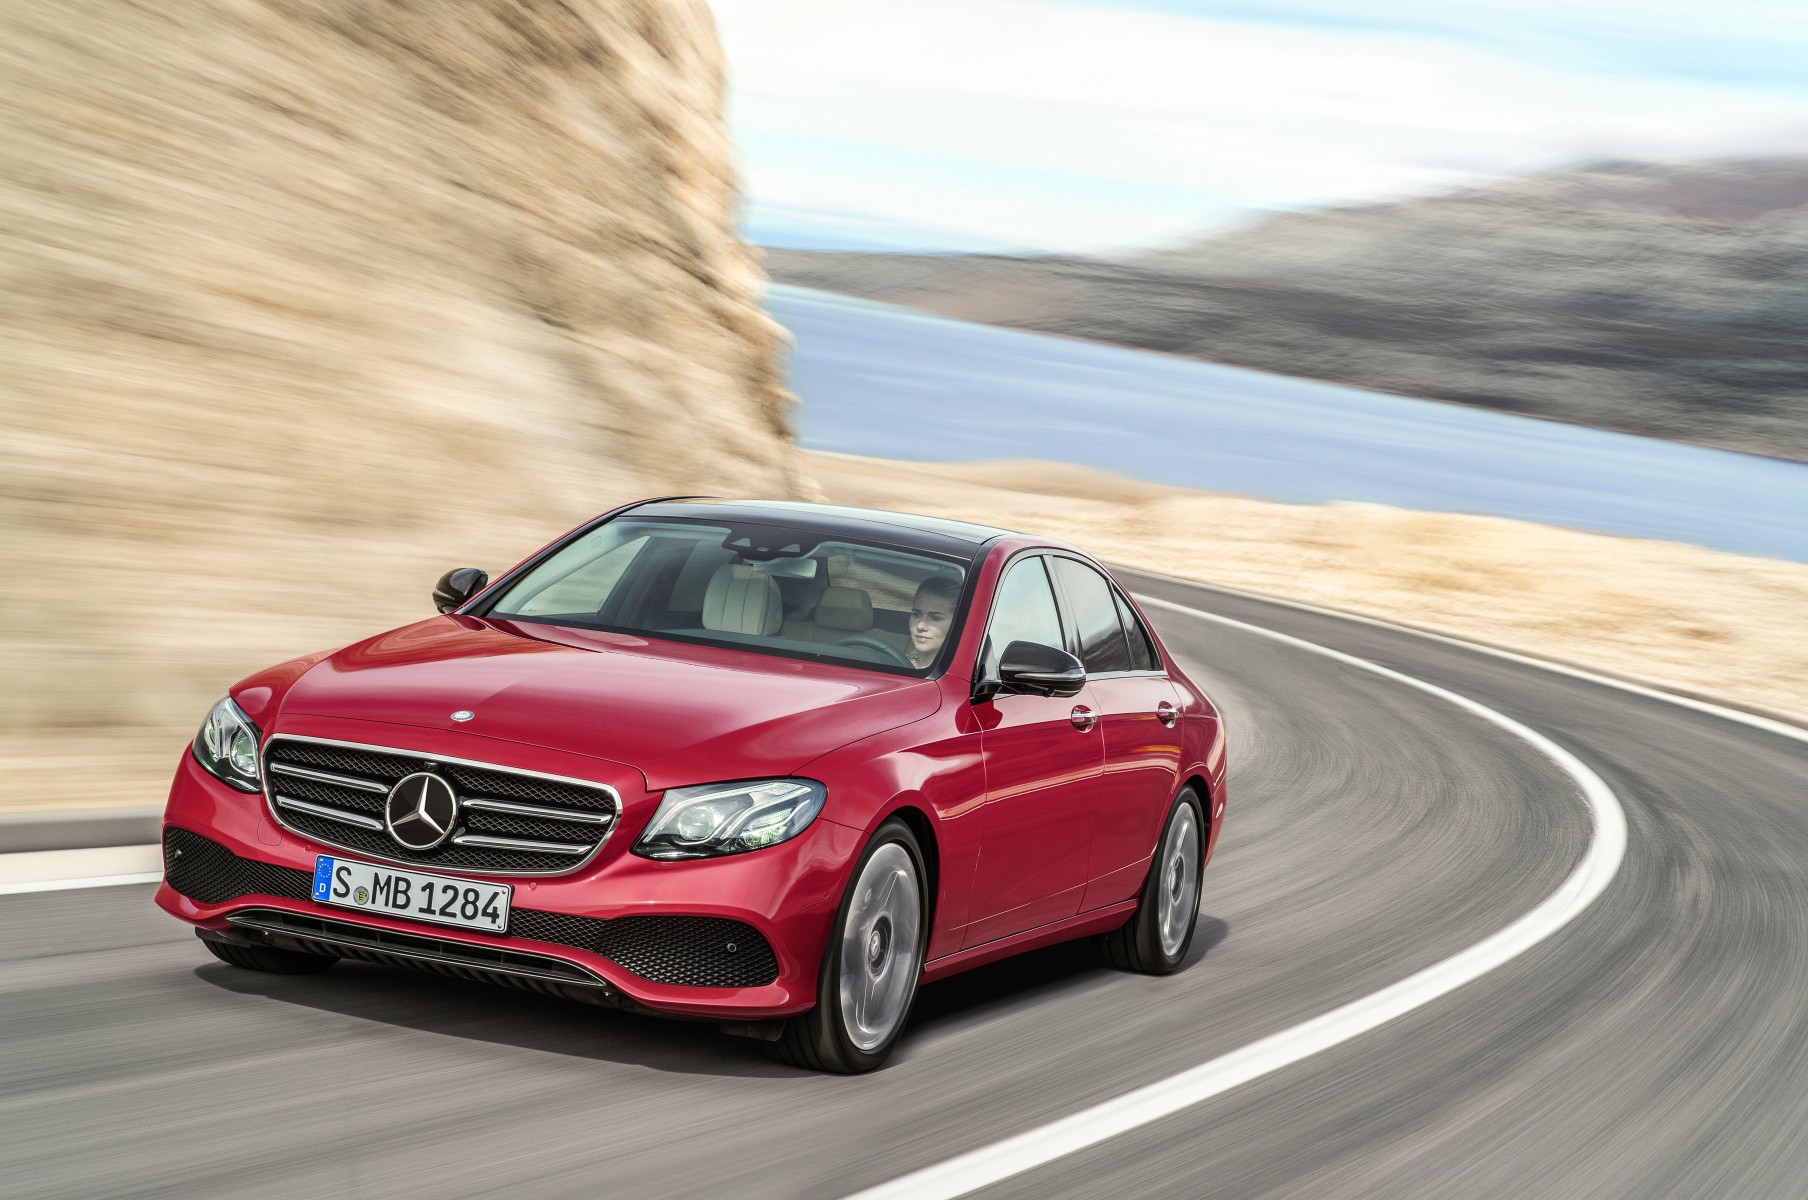 Mercedes-Benz E-Class, E 220 d, AVANTGARDE, Night Package, Hyazinth red, black/macciato